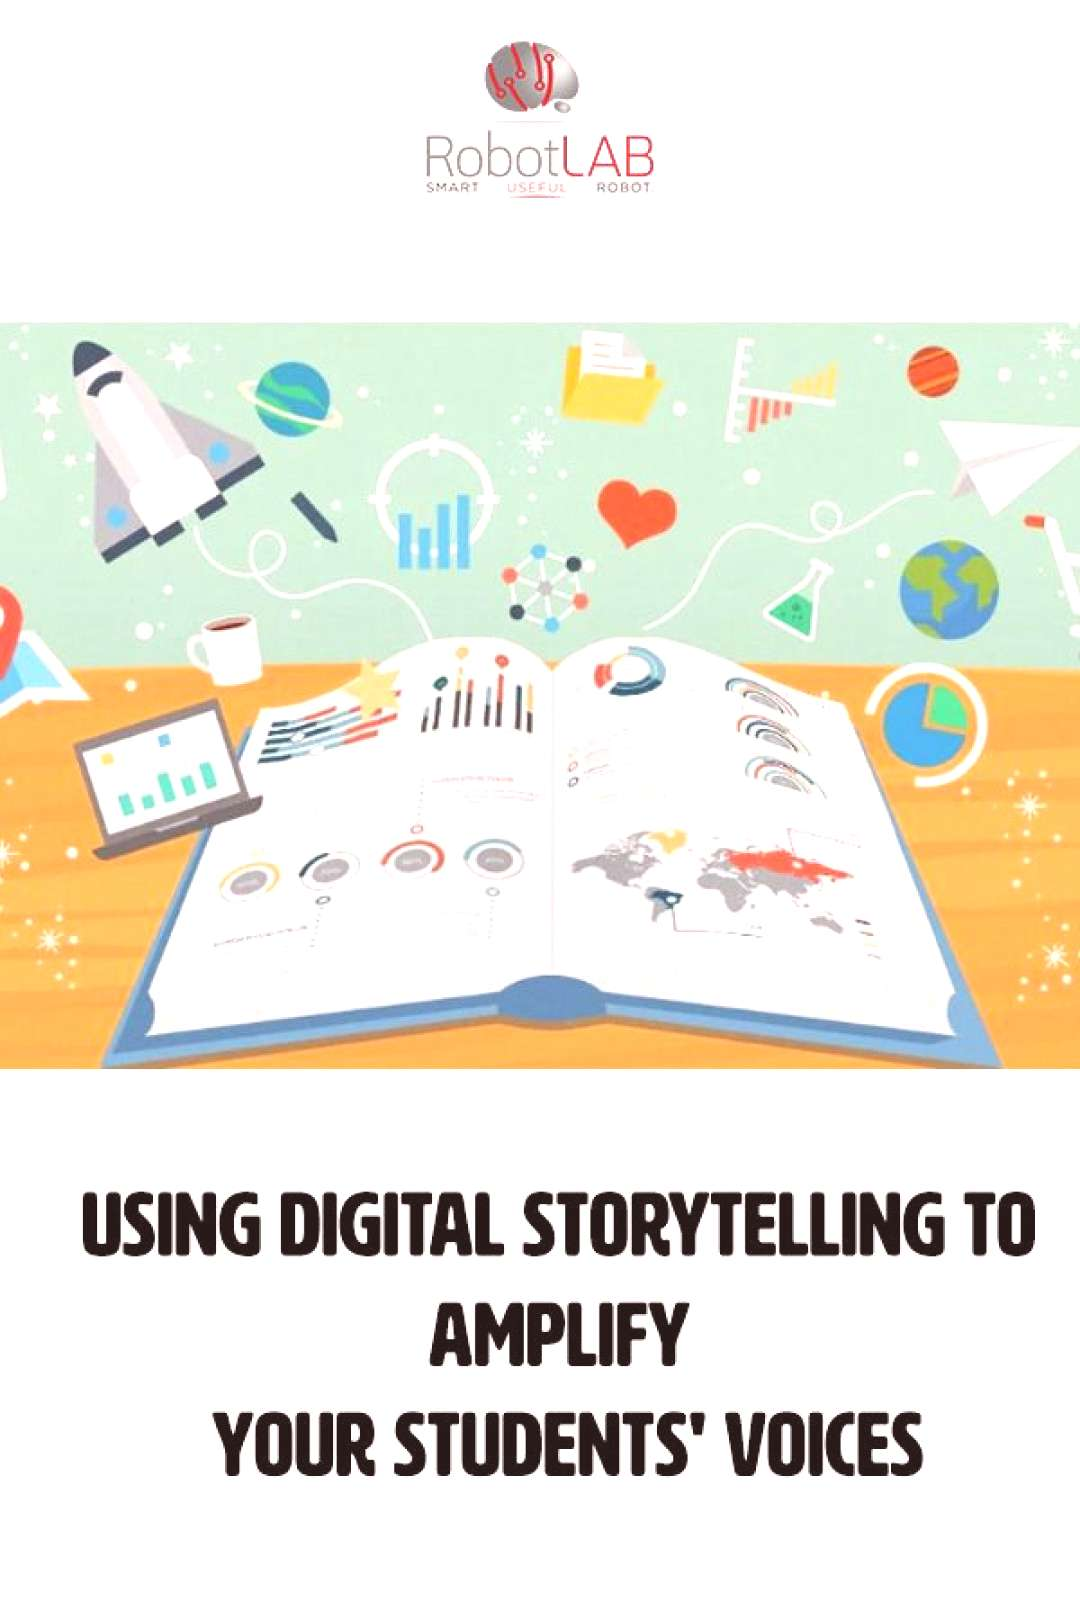 Digital storytelling is a fantastic way to implement technology and digital literacy into the class